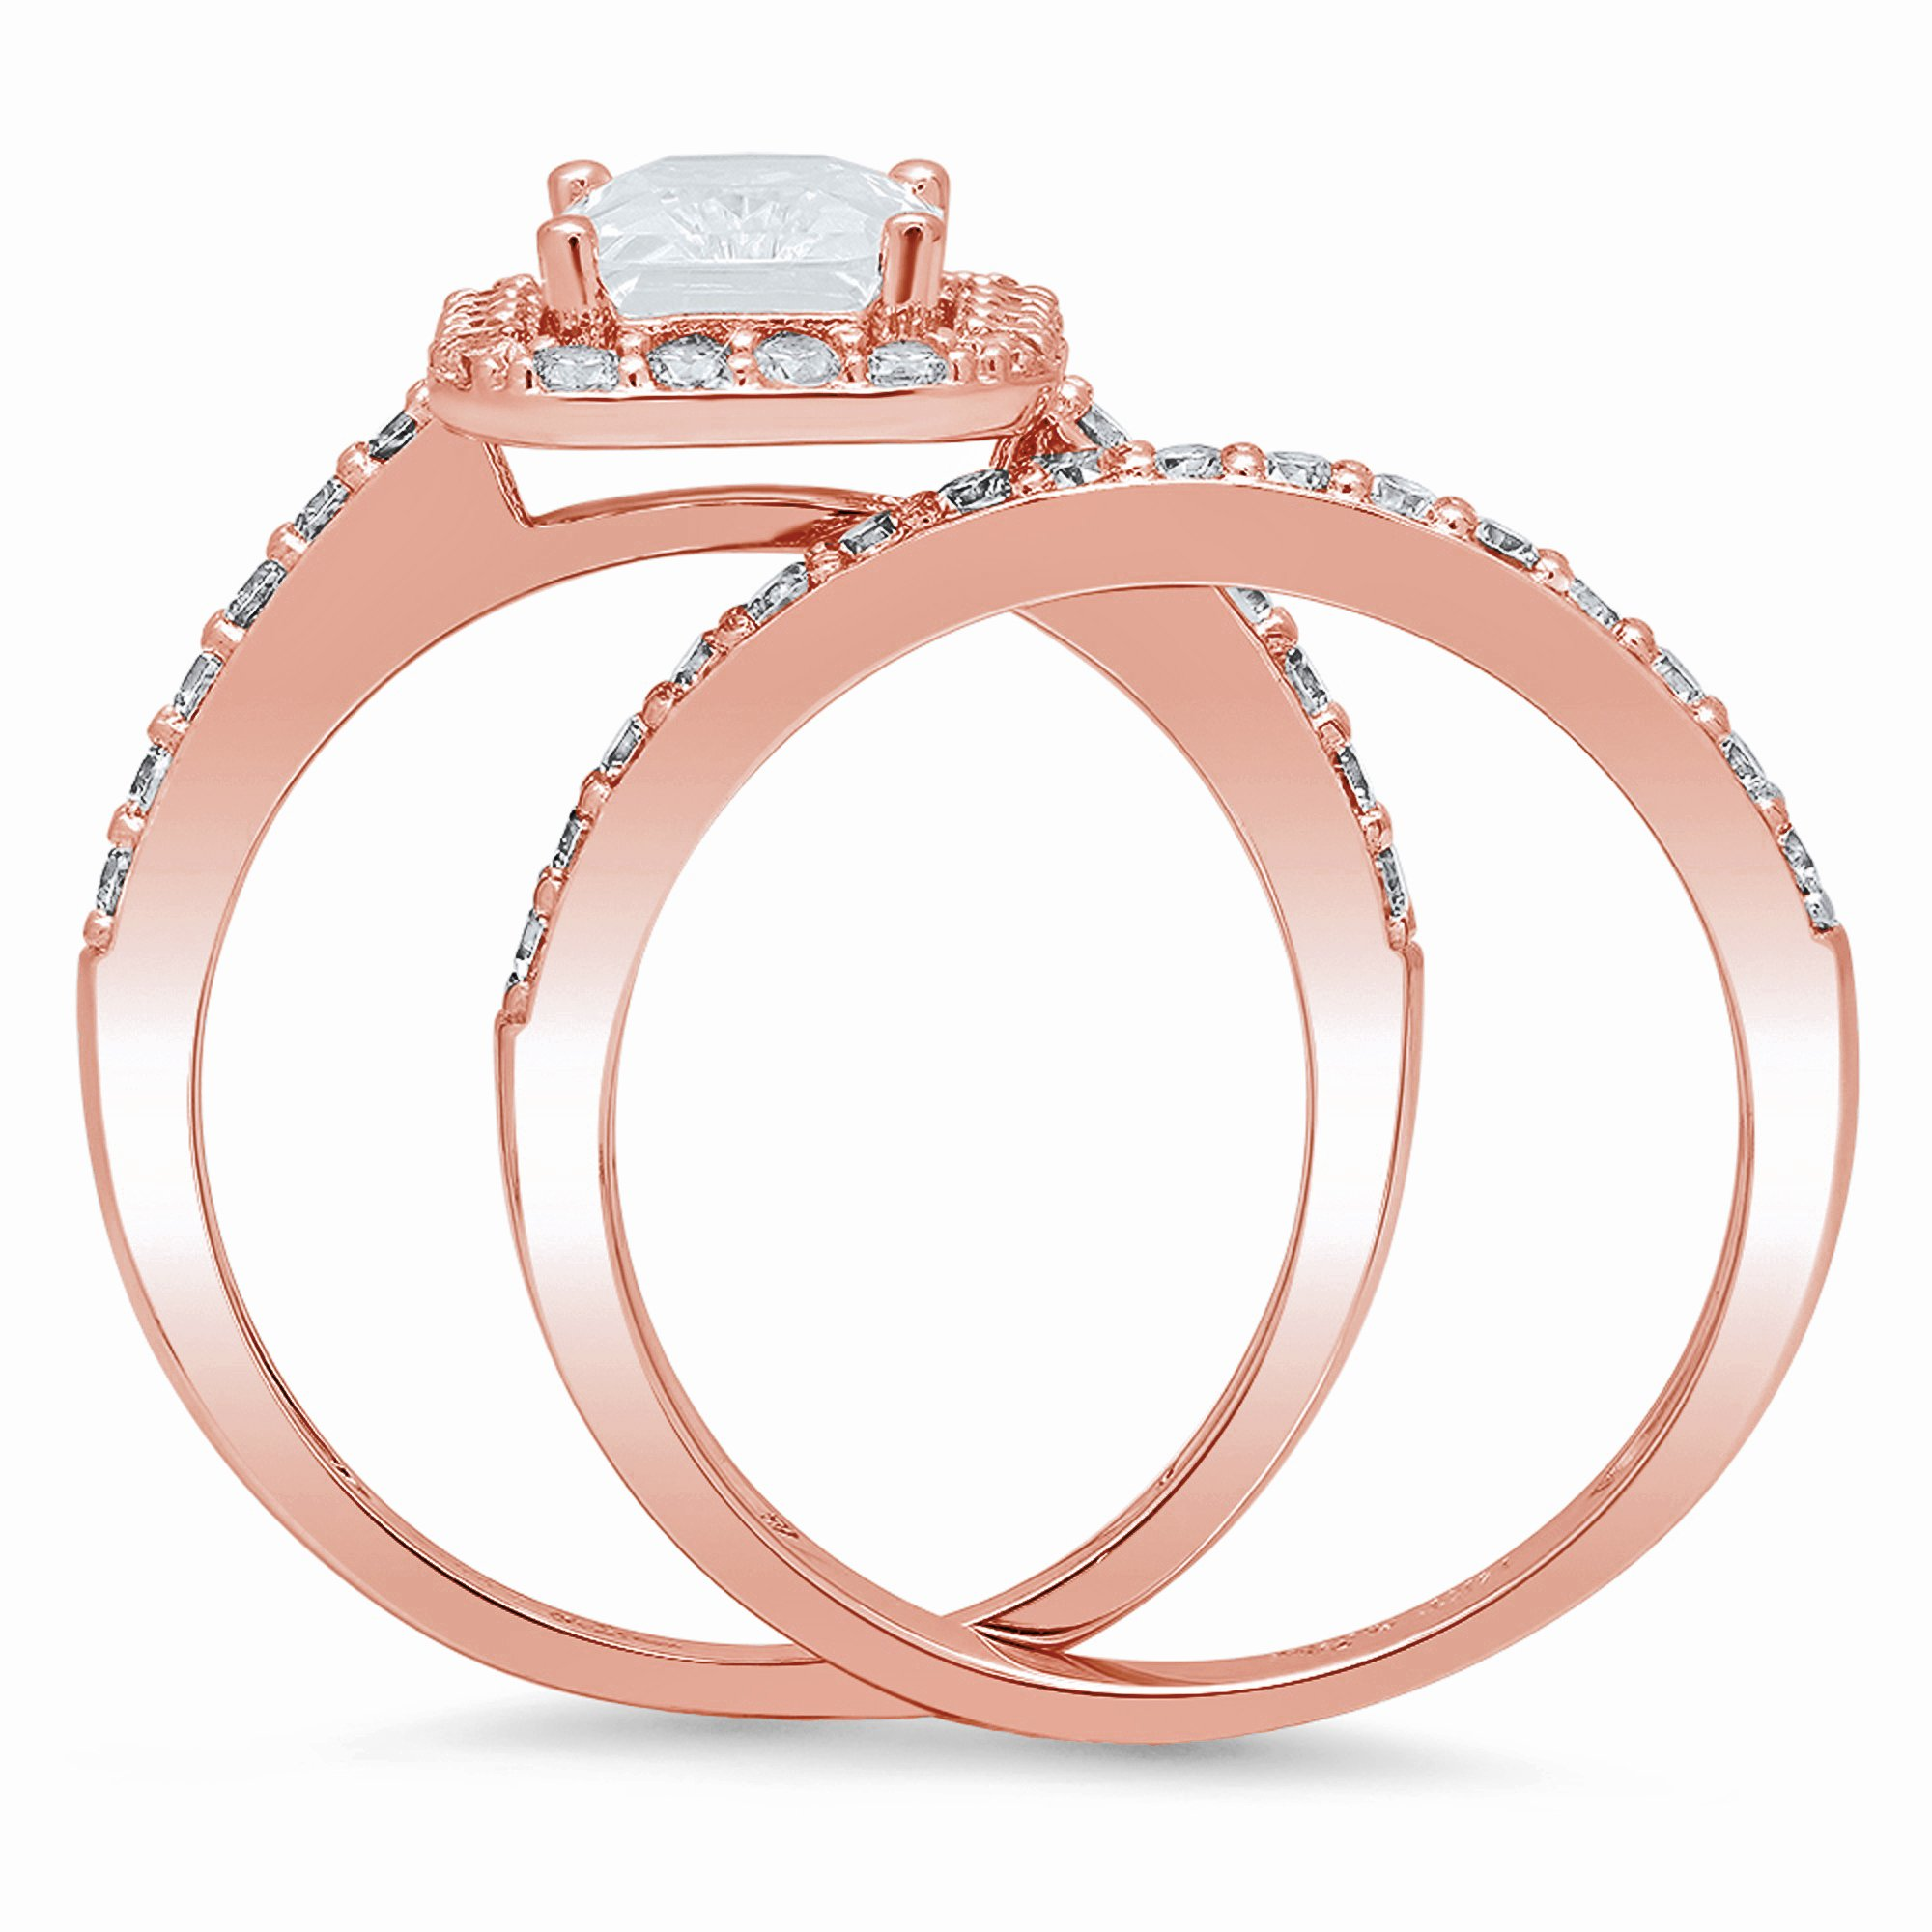 14k Solid Rose Gold 2ct Emerald Brilliant Cut Solitaire Pave Halo Bridal Anniversary Engagement Wedding Promise Ring Band Set for Women, 8 by Clara Pucci (Image #2)